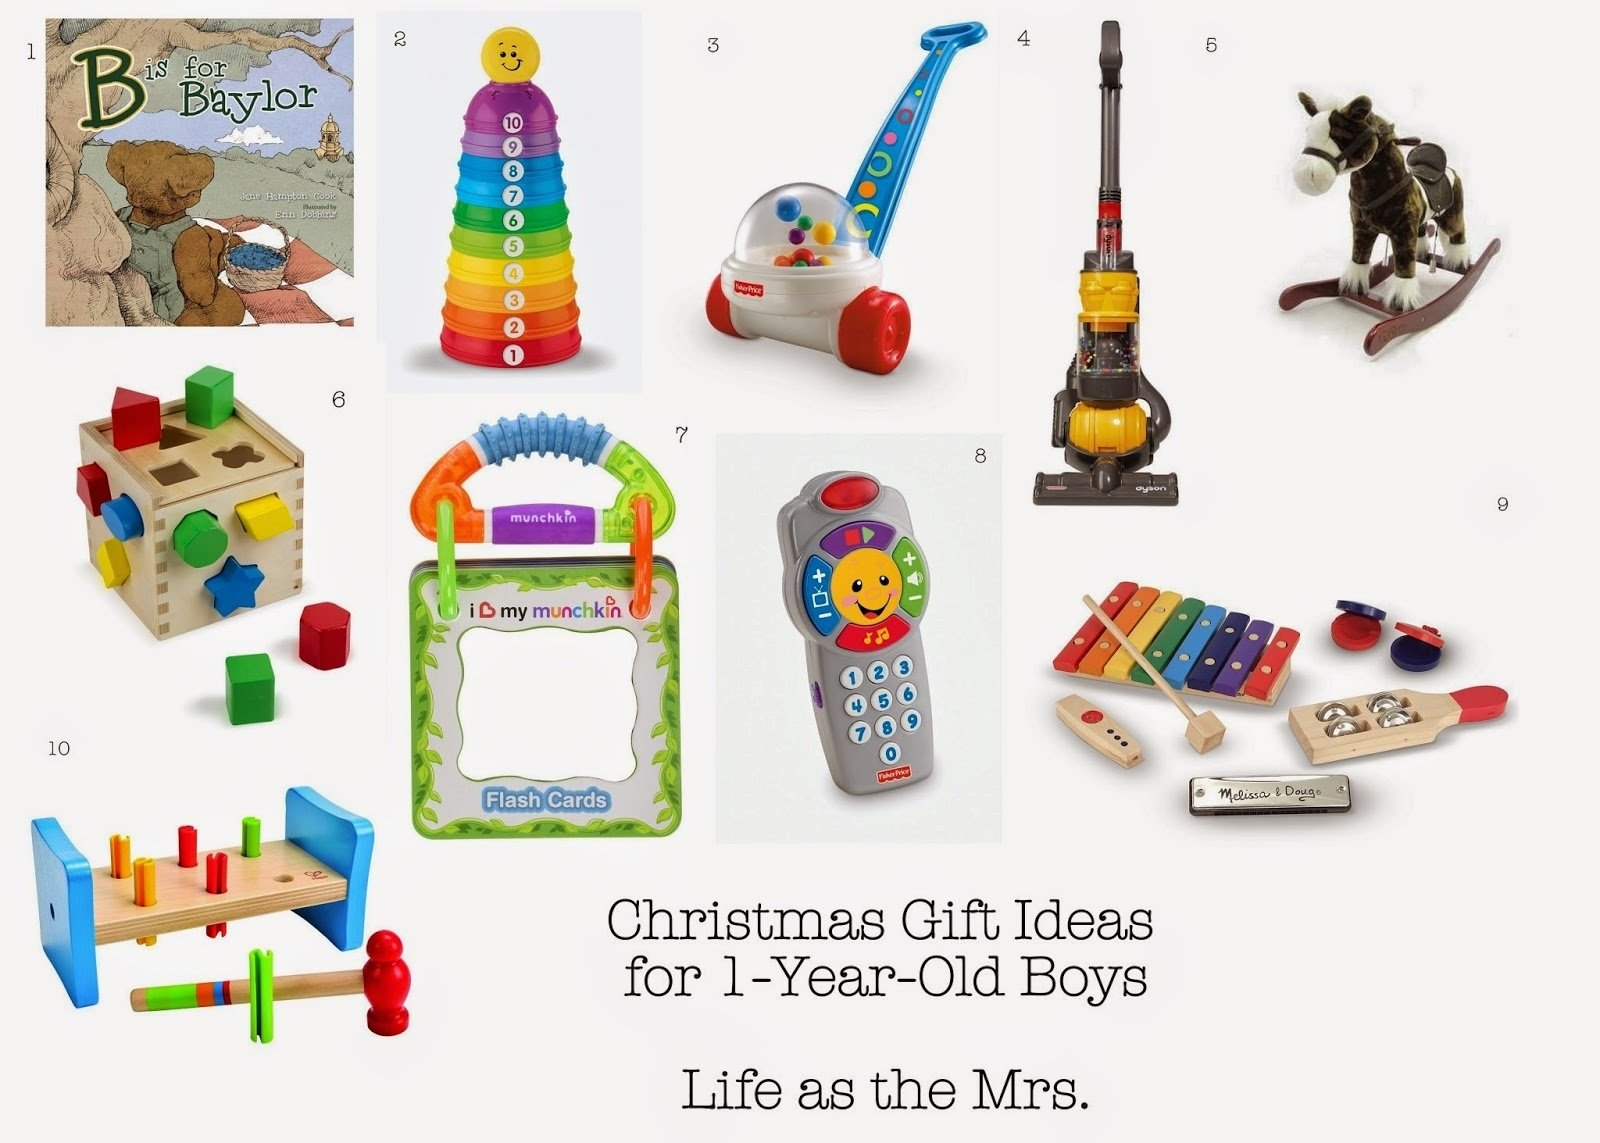 10 Unique Gift Ideas For One Year Old Boy life as the mrs christmas gift ideas for one year old boys 9 2020